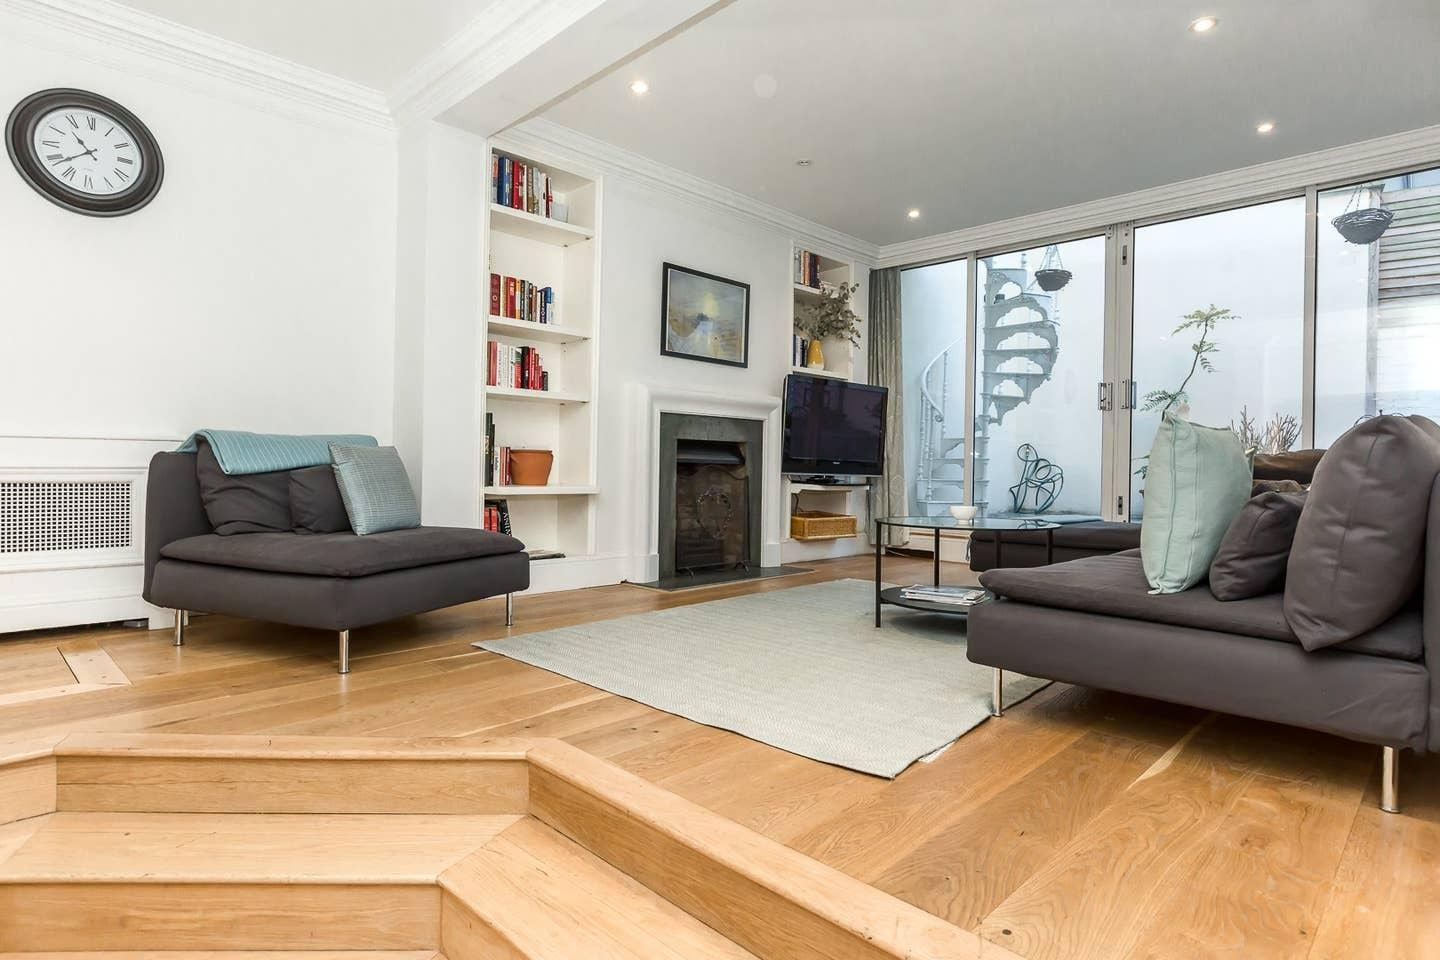 Property Image 1 - Exquisite 3 Bedroom House with Terrace in Knightsbridge